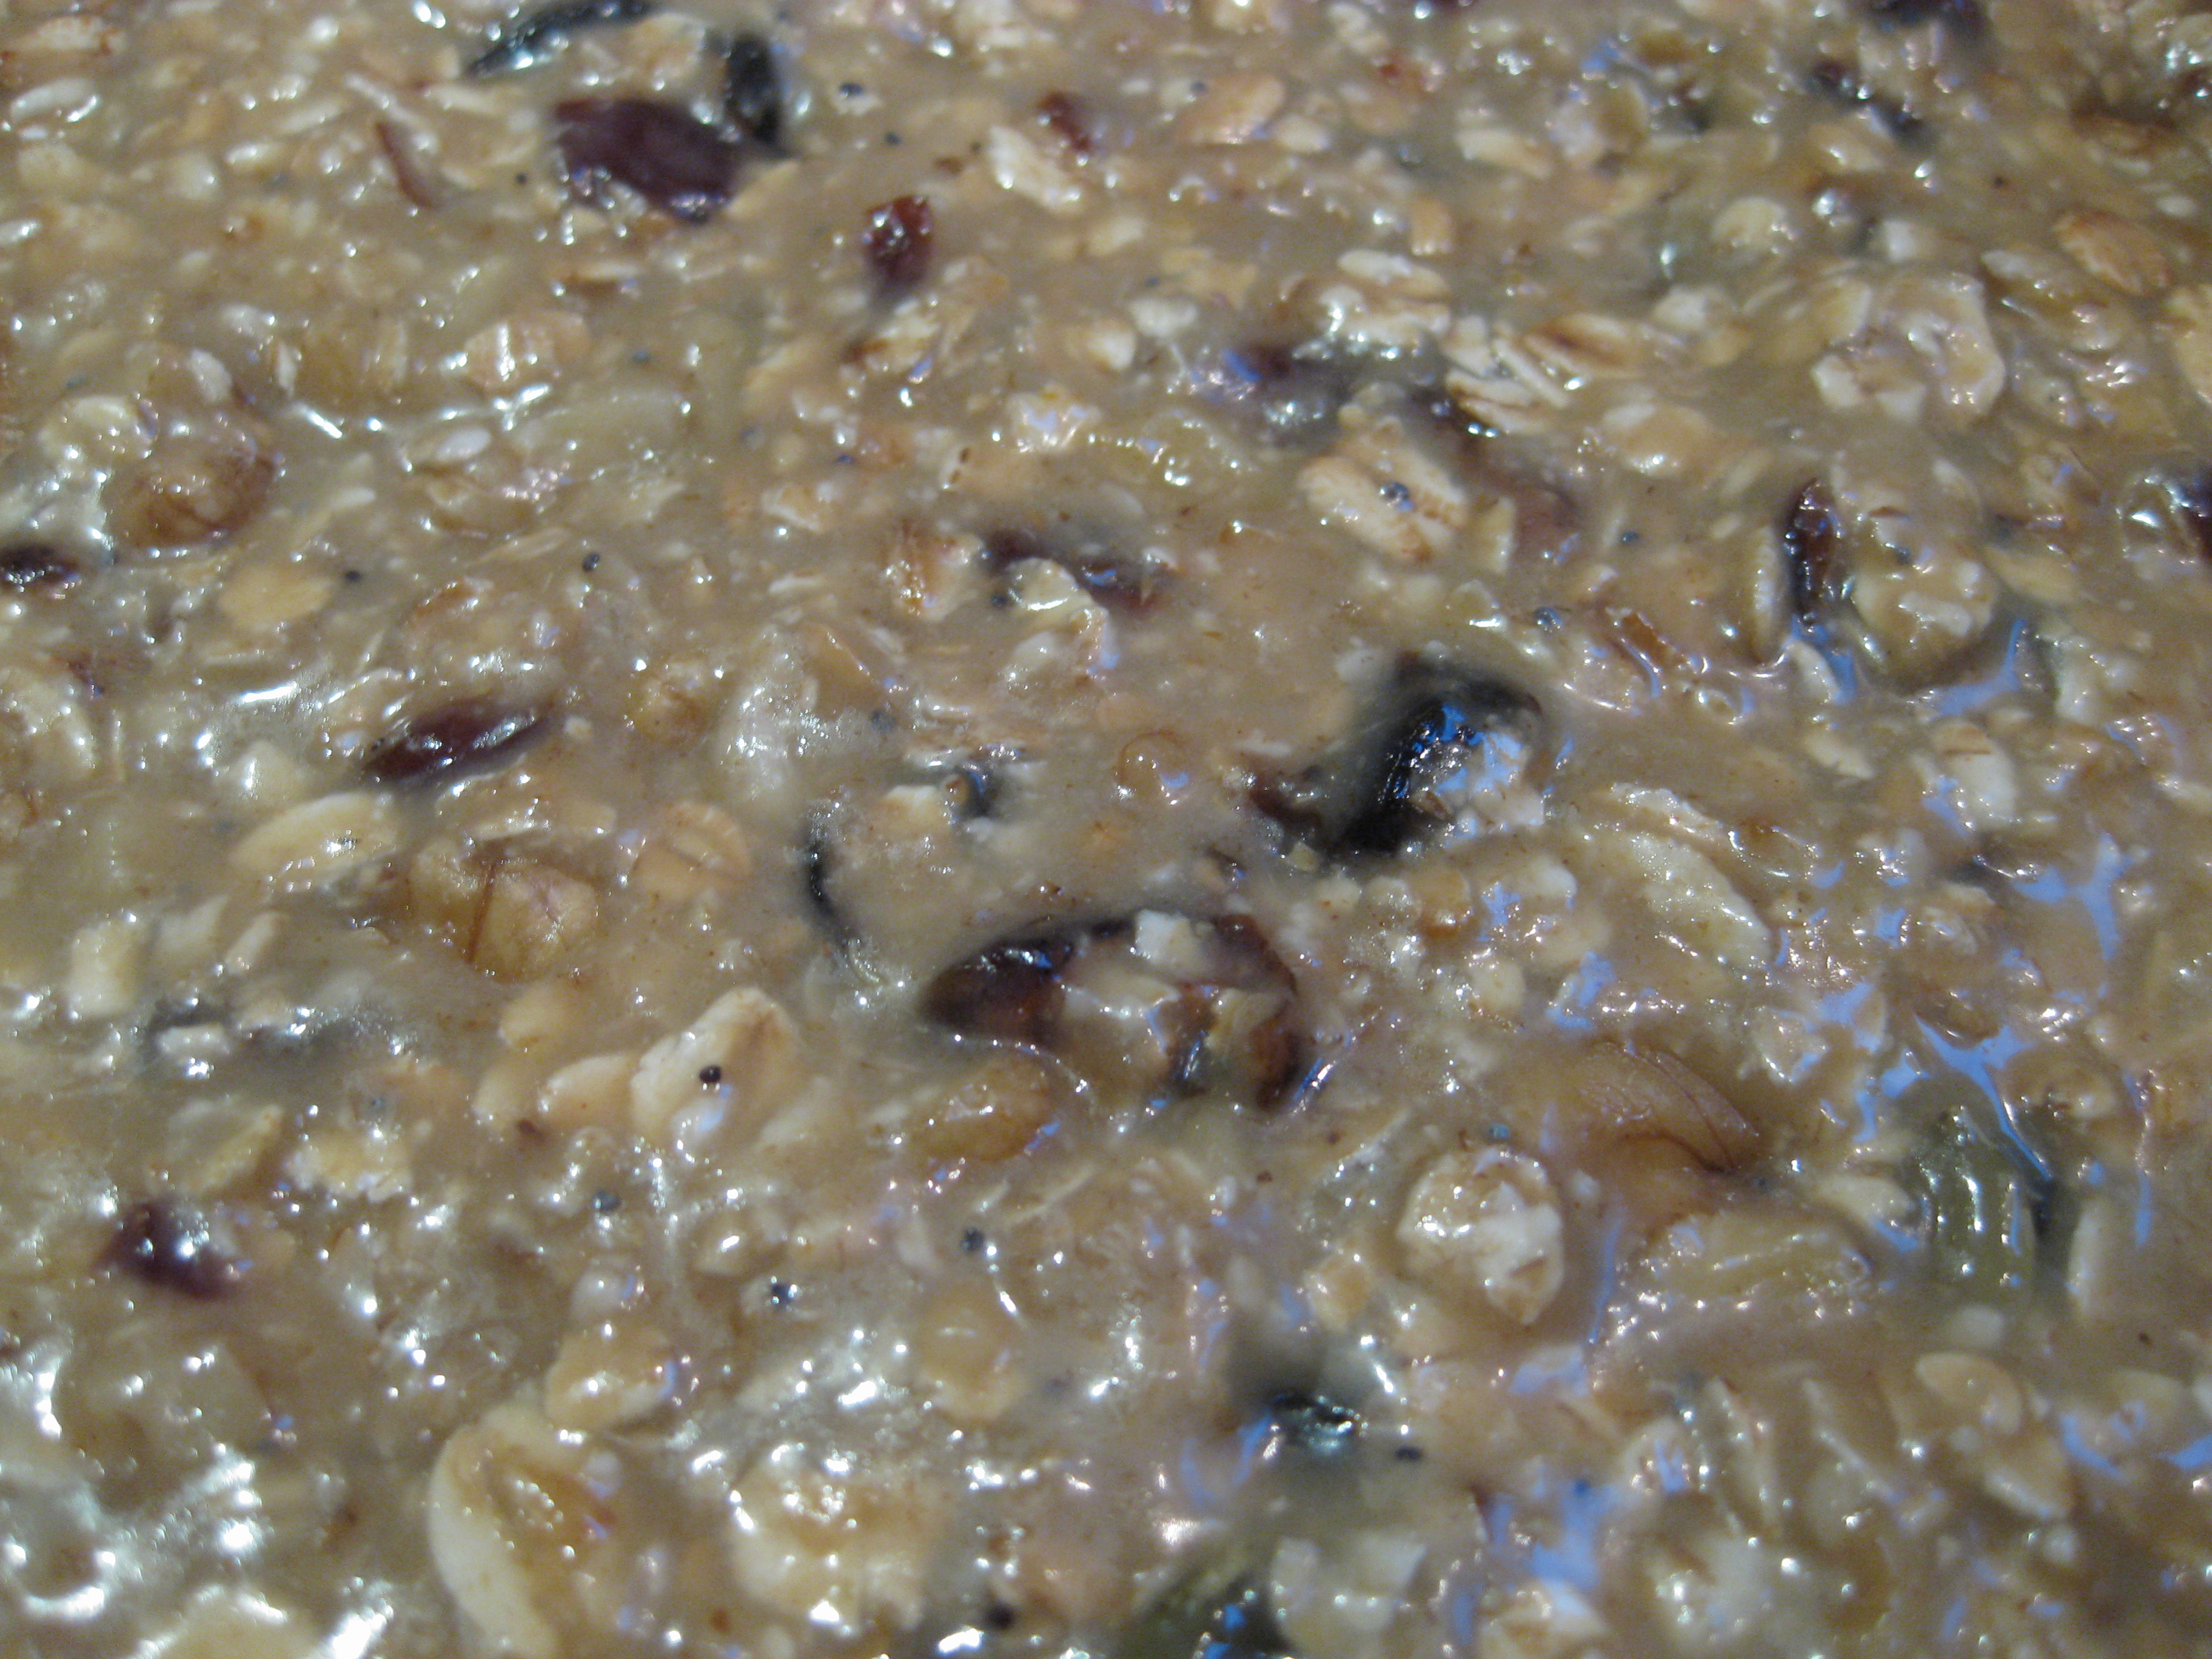 ... used a Rude Health oat mix including pumpkin and sunflower seeds